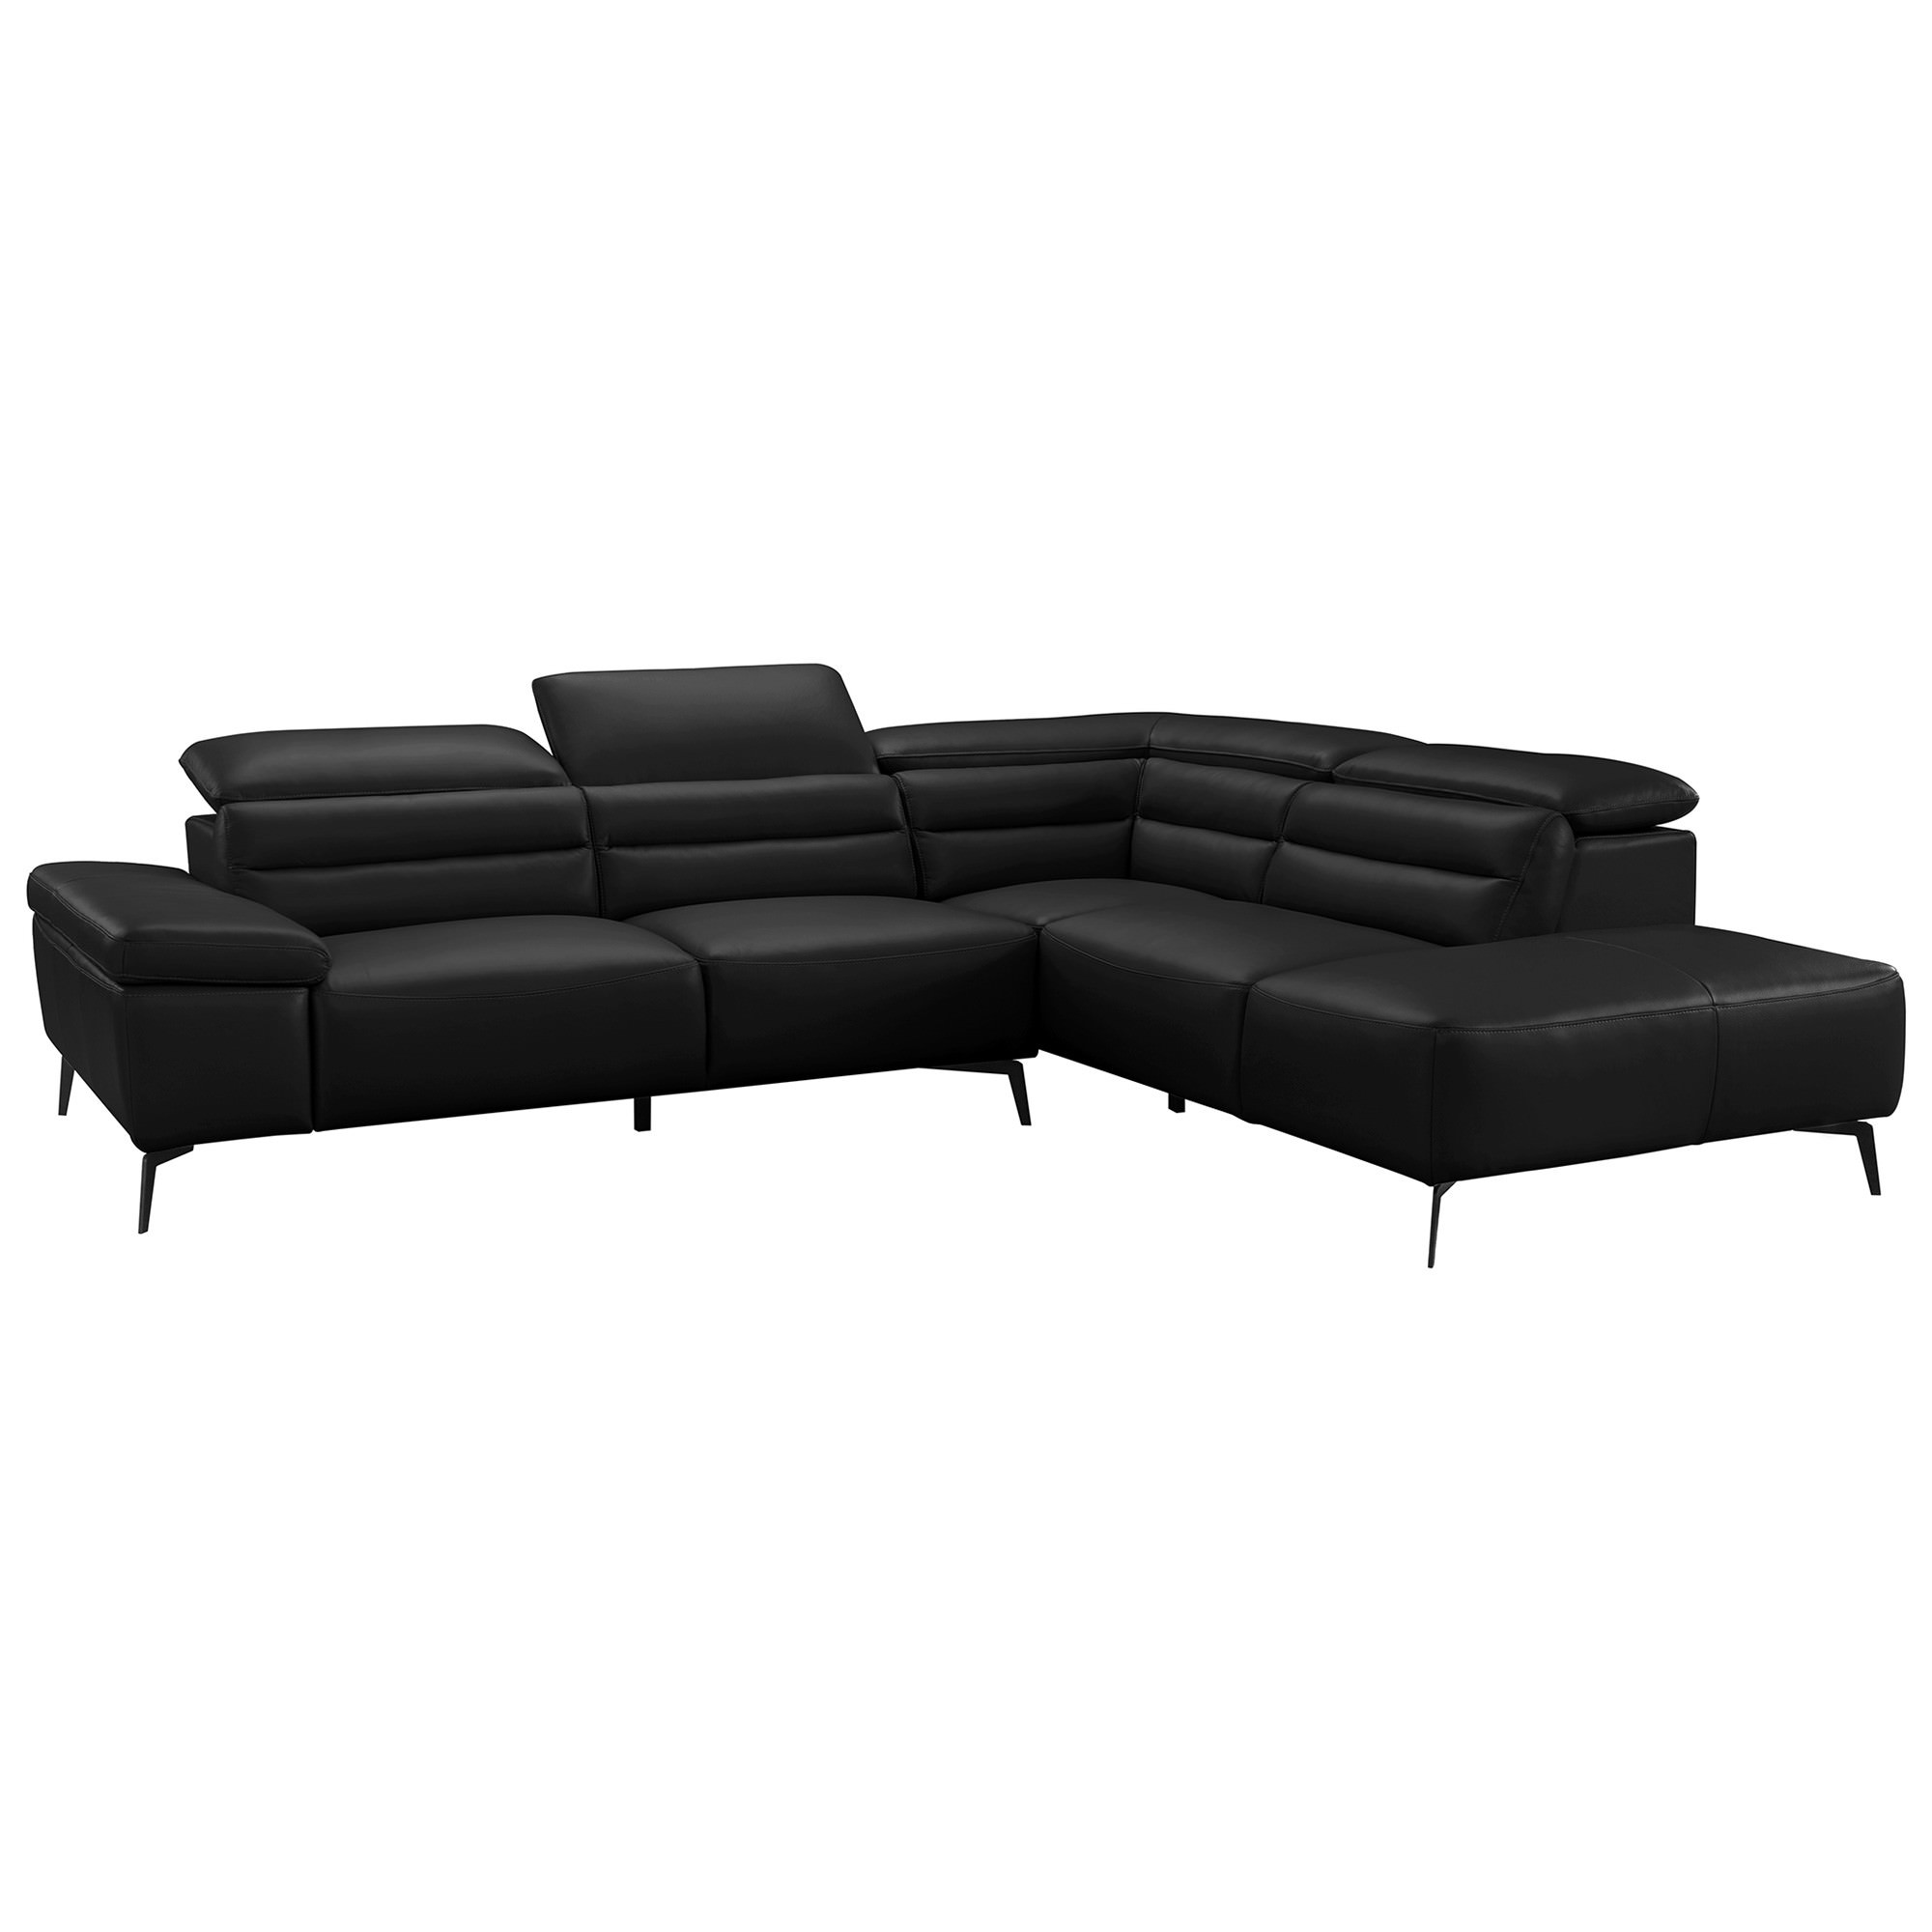 Casape Leather Corner Sofa, 3 Seater with Right Hand Facing Terminal, Black